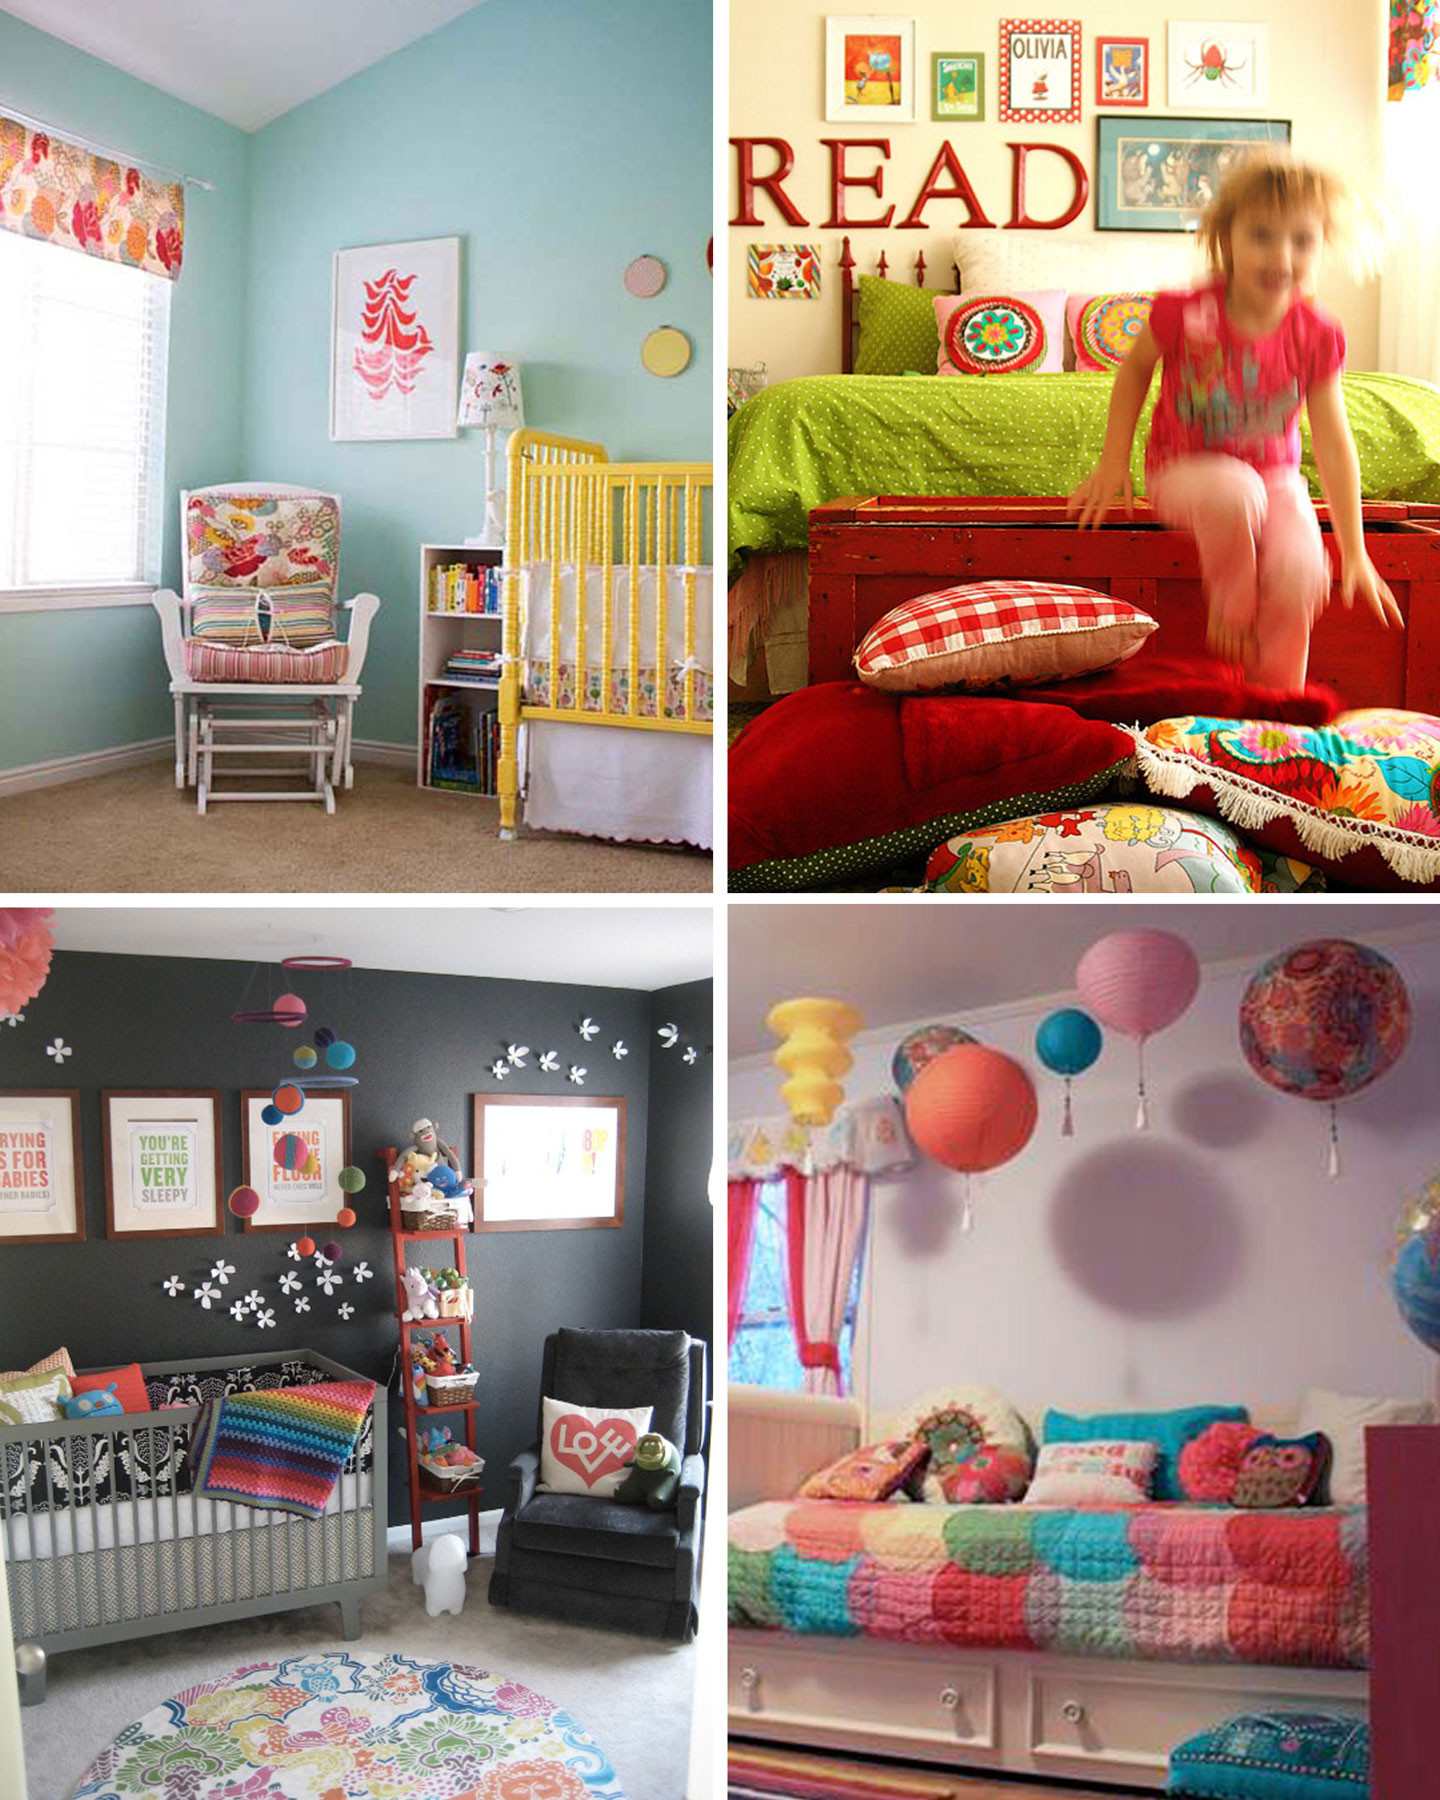 Best ideas about DIY For Kids Rooms . Save or Pin DIY Friday Kids Room Inspiration Now.